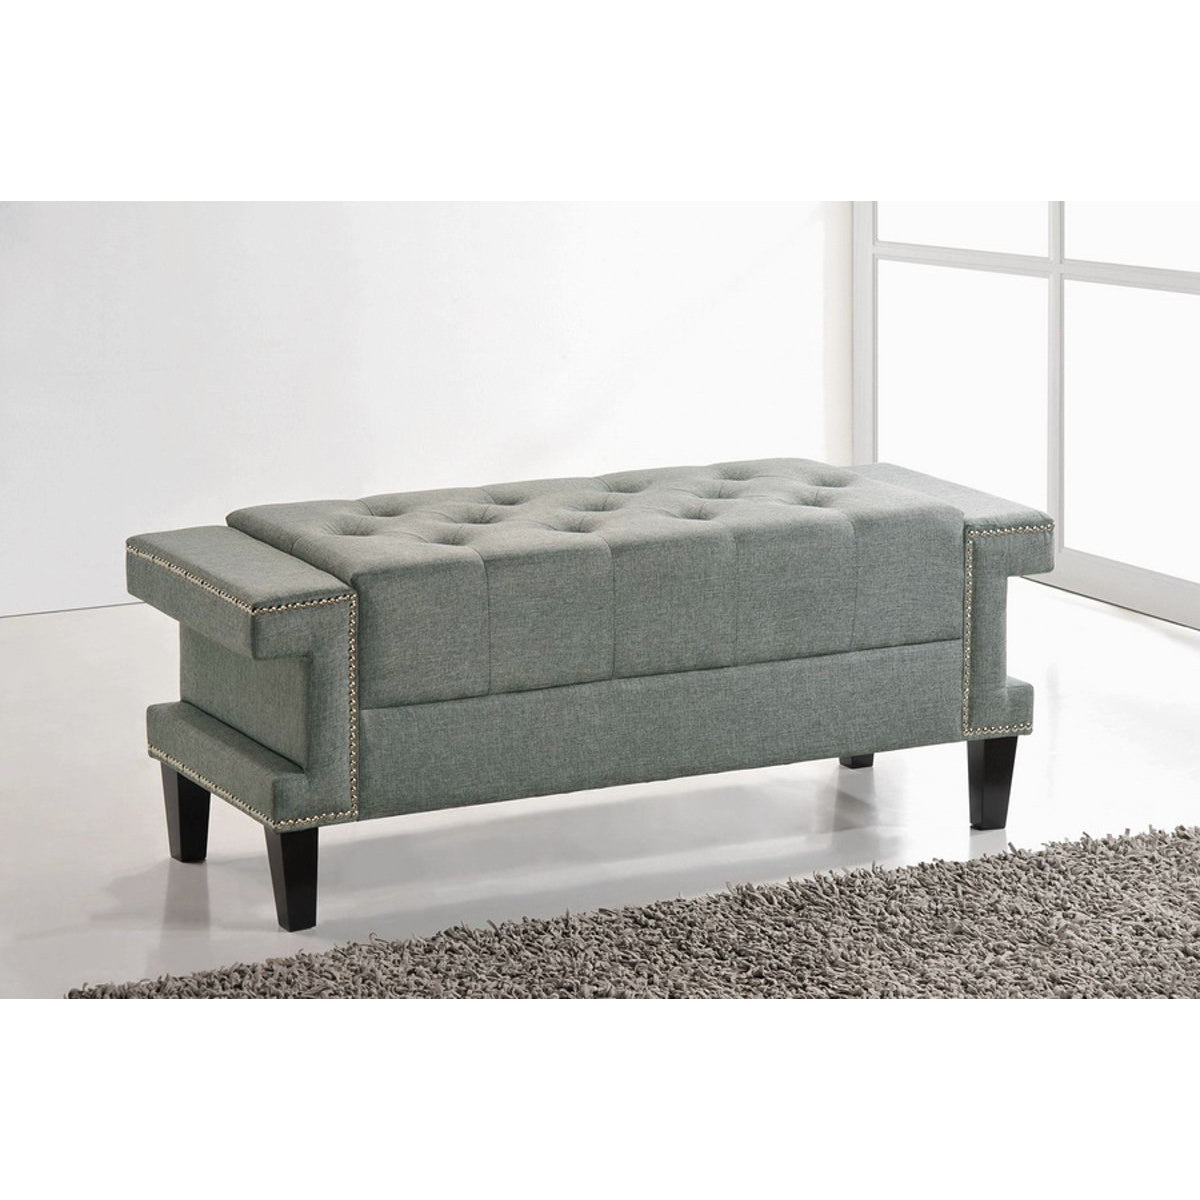 Baxton Studio Contemporary Grey Cheshire Bench Baxton Studio-benches-Minimal And Modern - 1